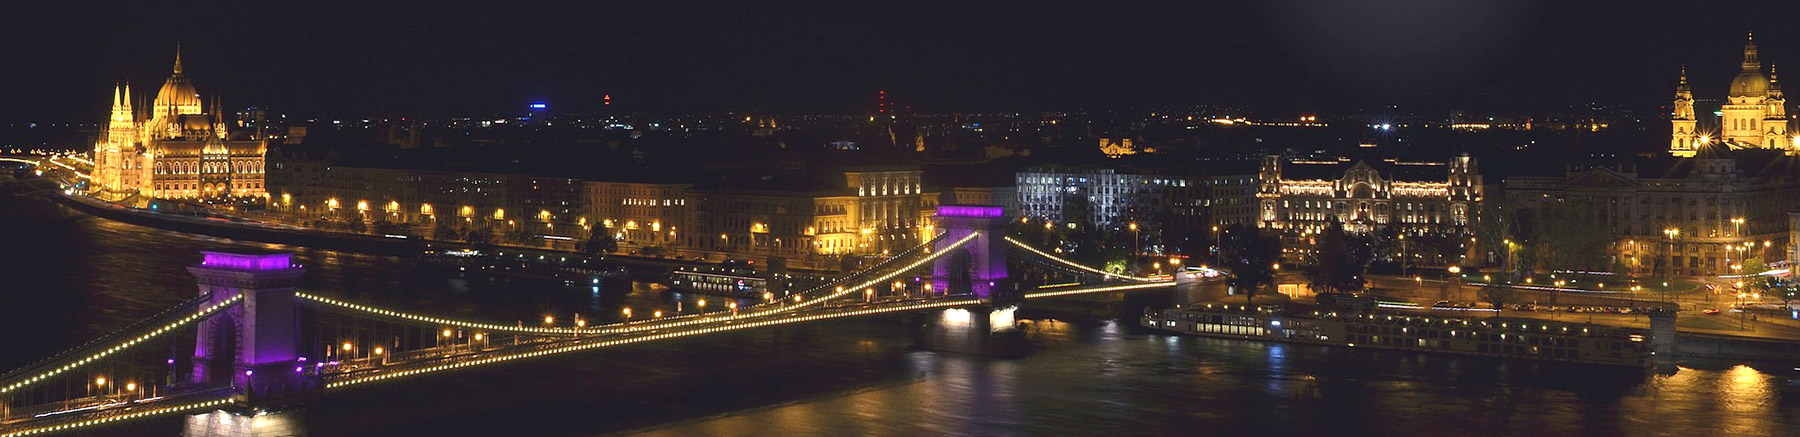 View of Budapest by night with the Széchenyi Chain Bridge and the massive parliament building